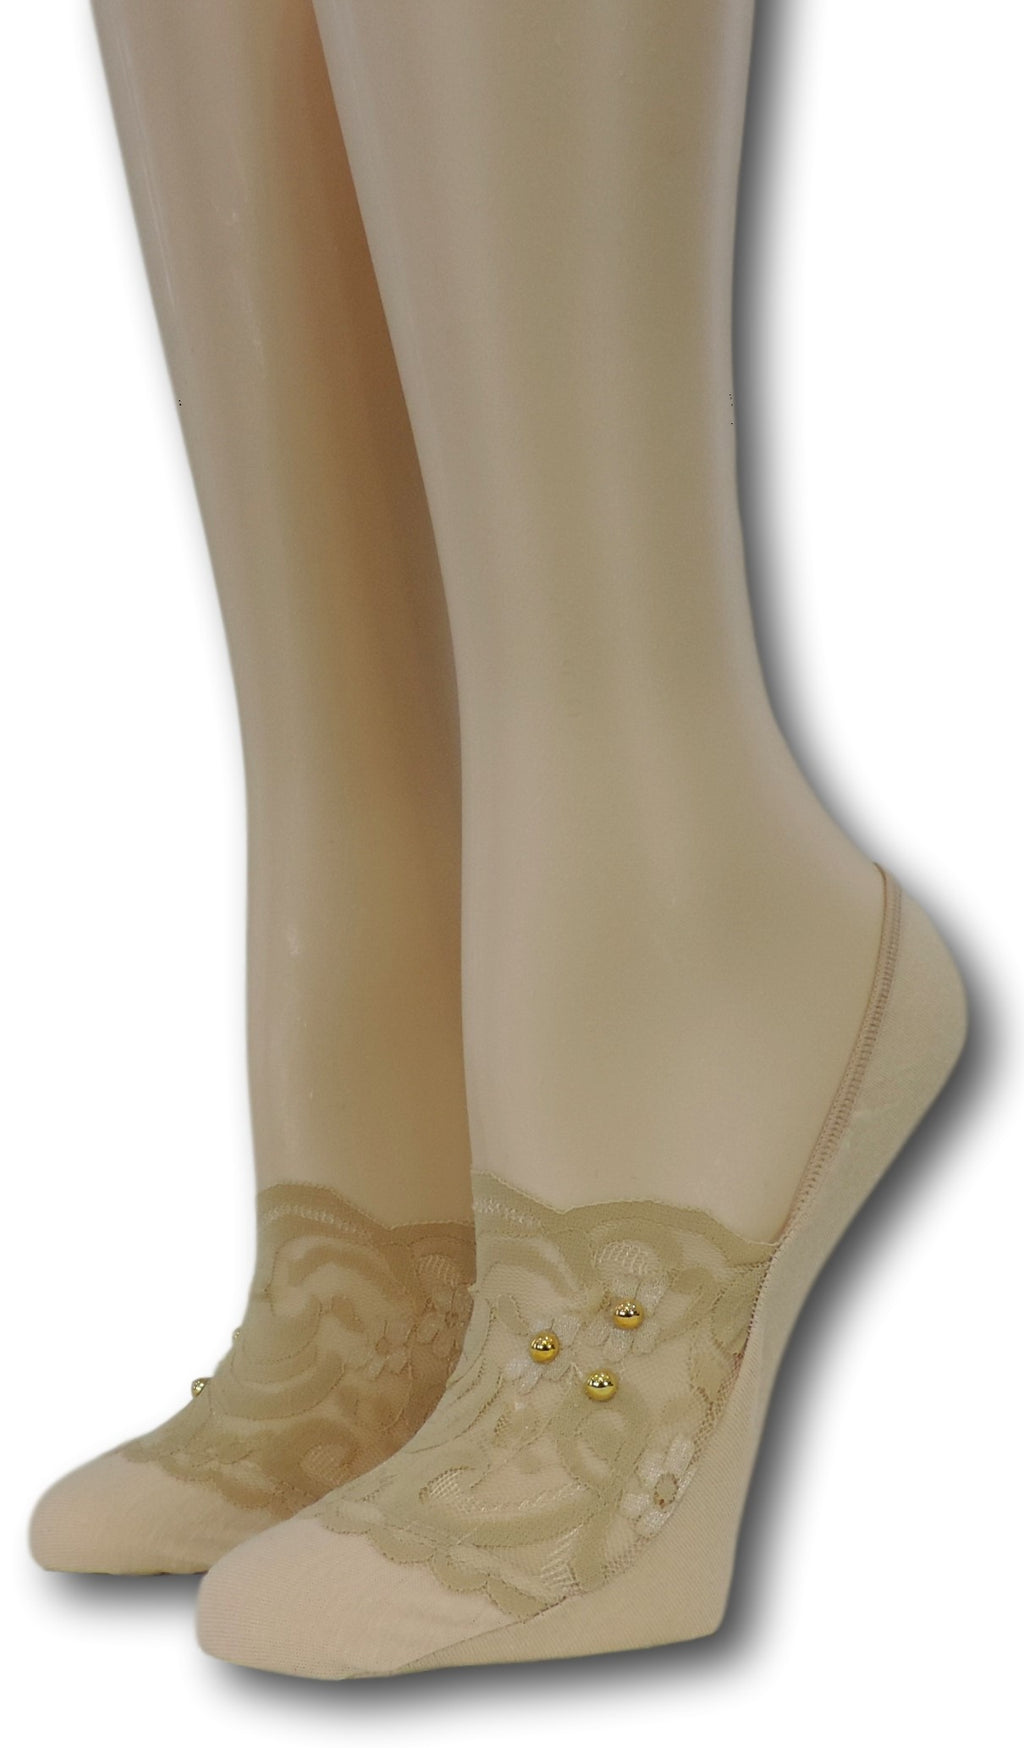 Exotic Beige No Show Sheer Socks with beads